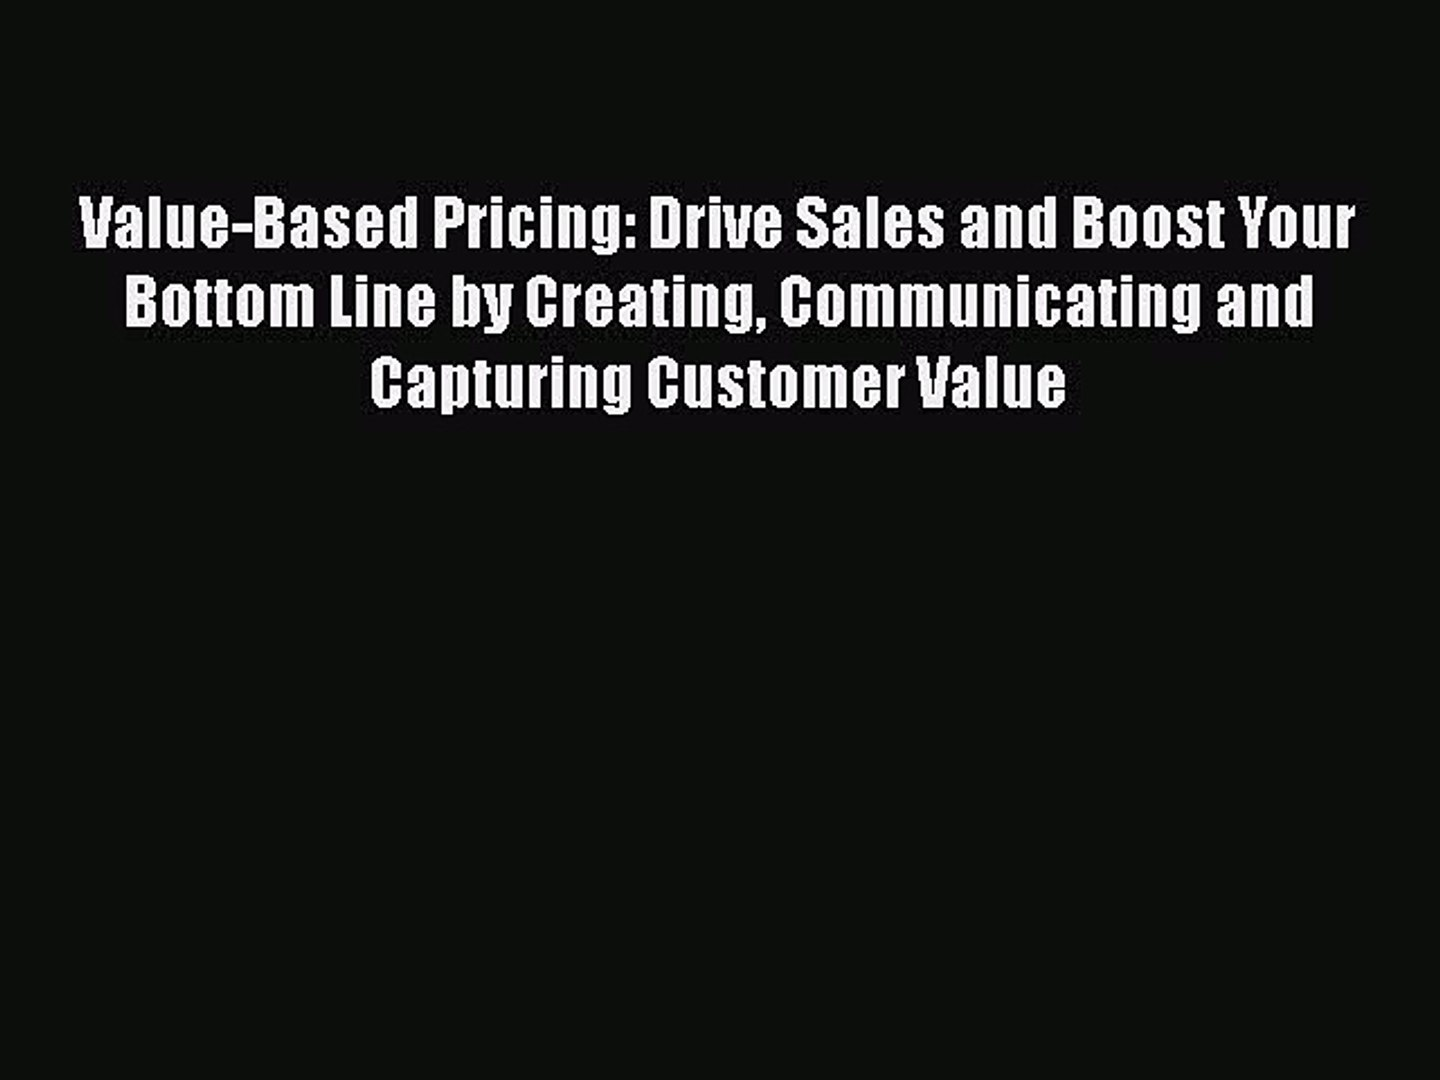 READbookValue-Based Pricing: Drive Sales and Boost Your Bottom Line by Creating Communicating